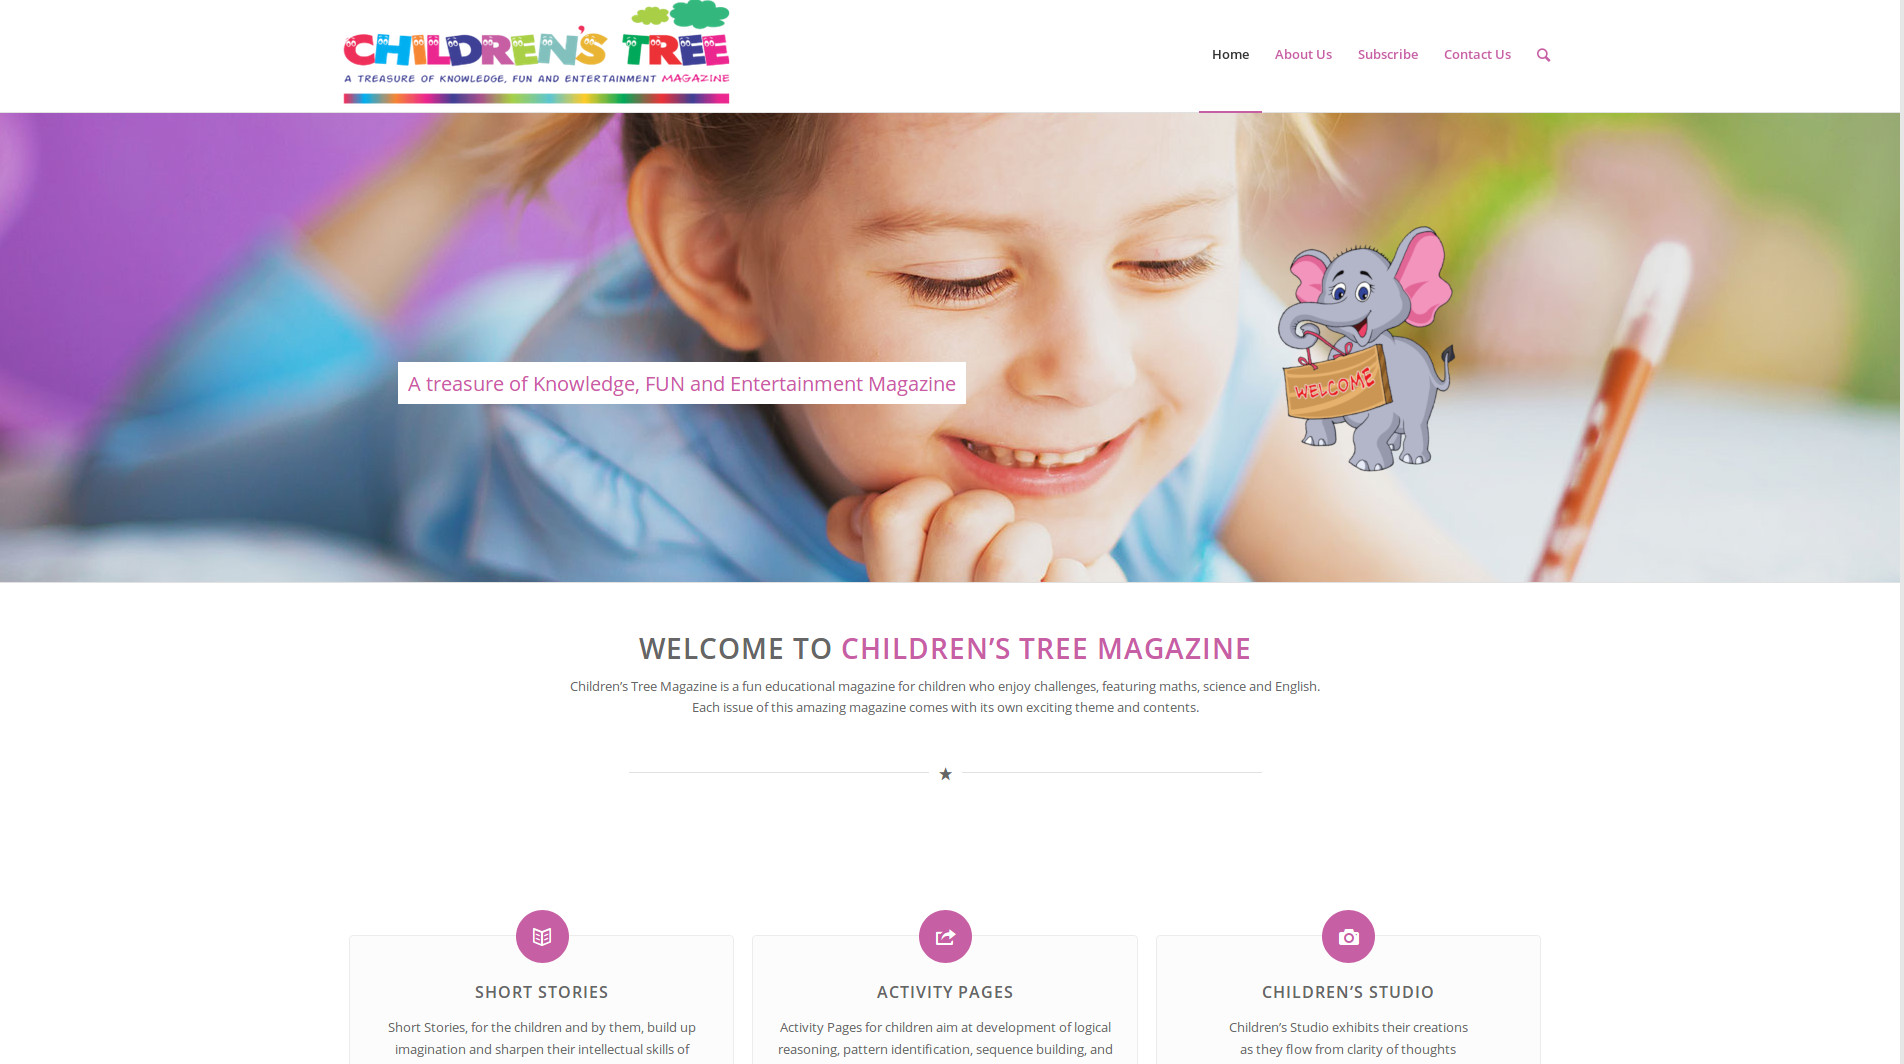 Children's tree magazine